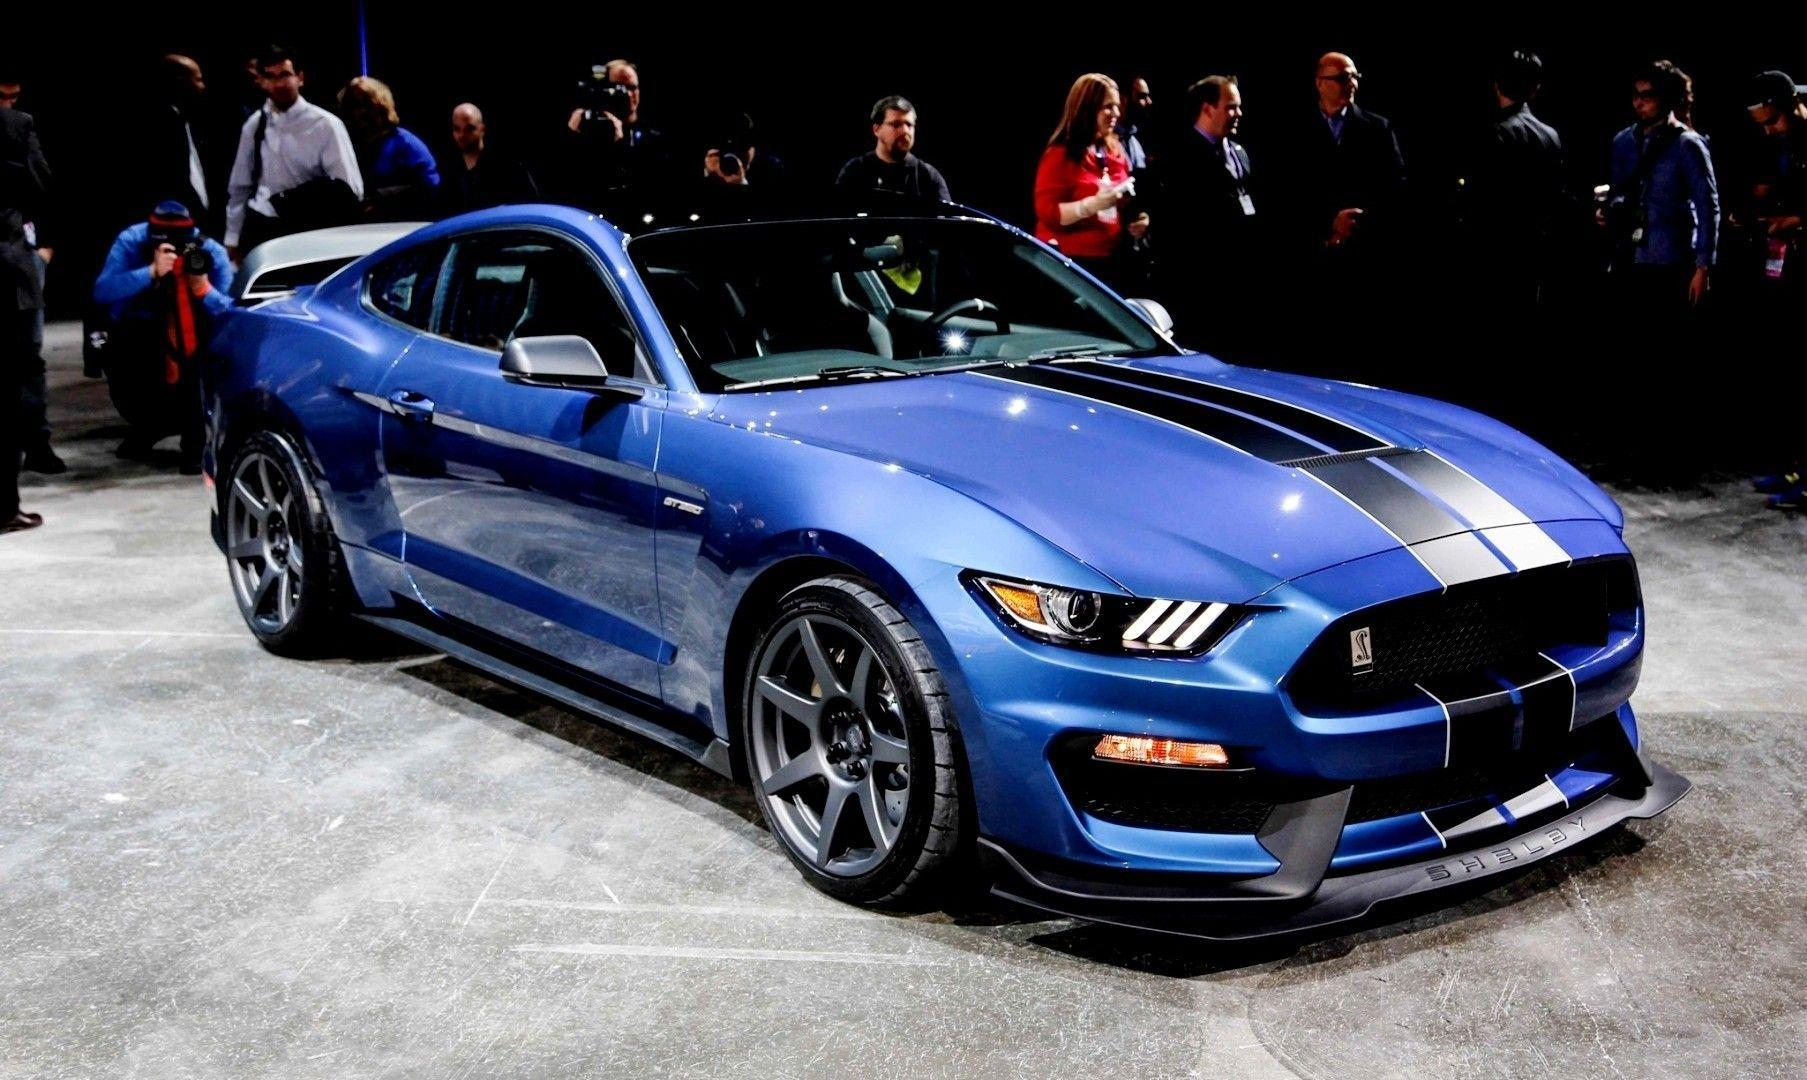 2016 Ford Mustang Shelby GT350, ford mustang wallpapers 1080p